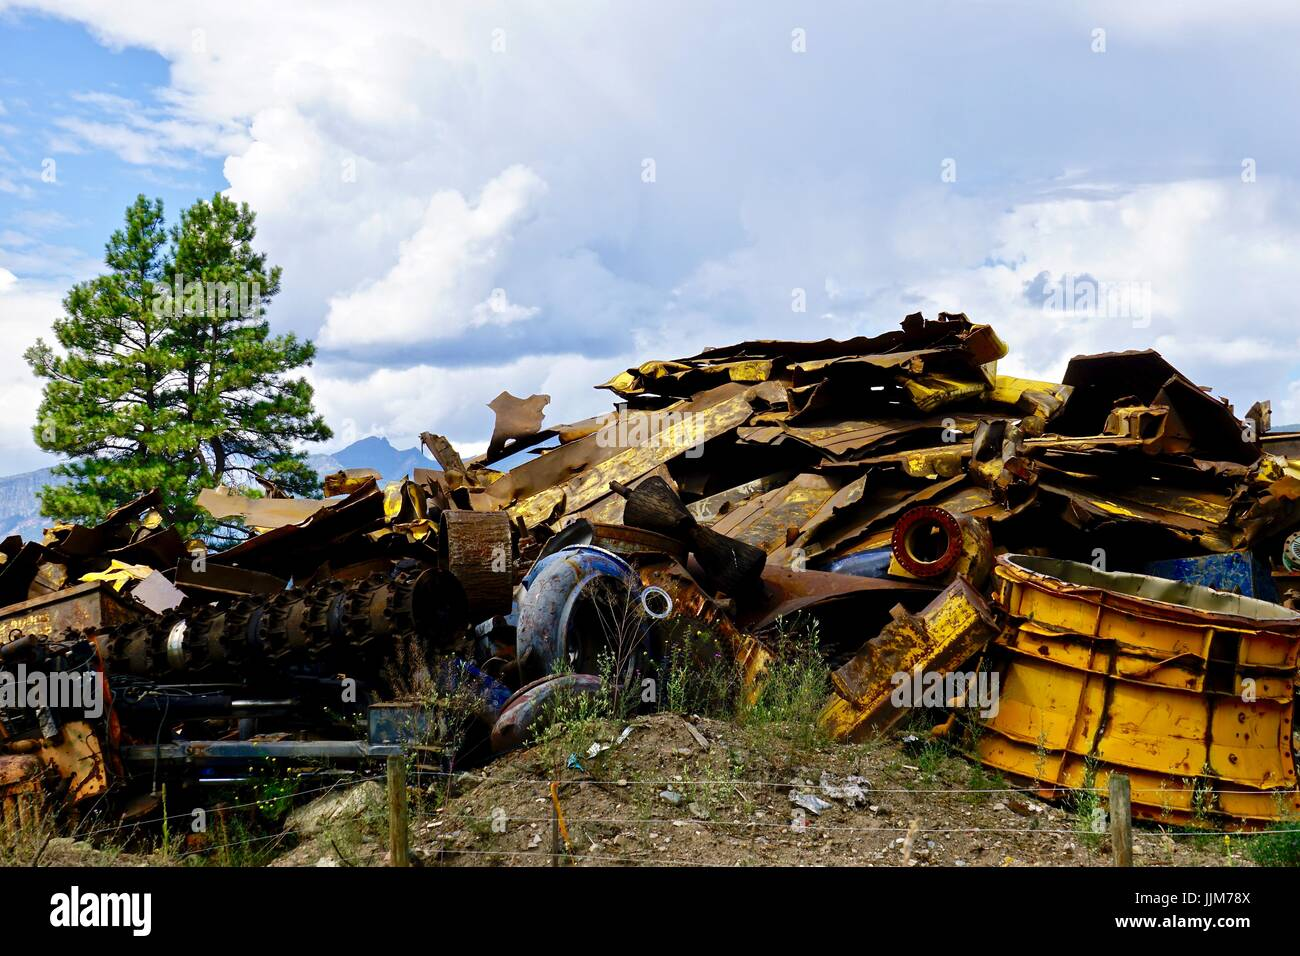 Colorful scrap metal in junk yard against a natural landscape - Stock Image